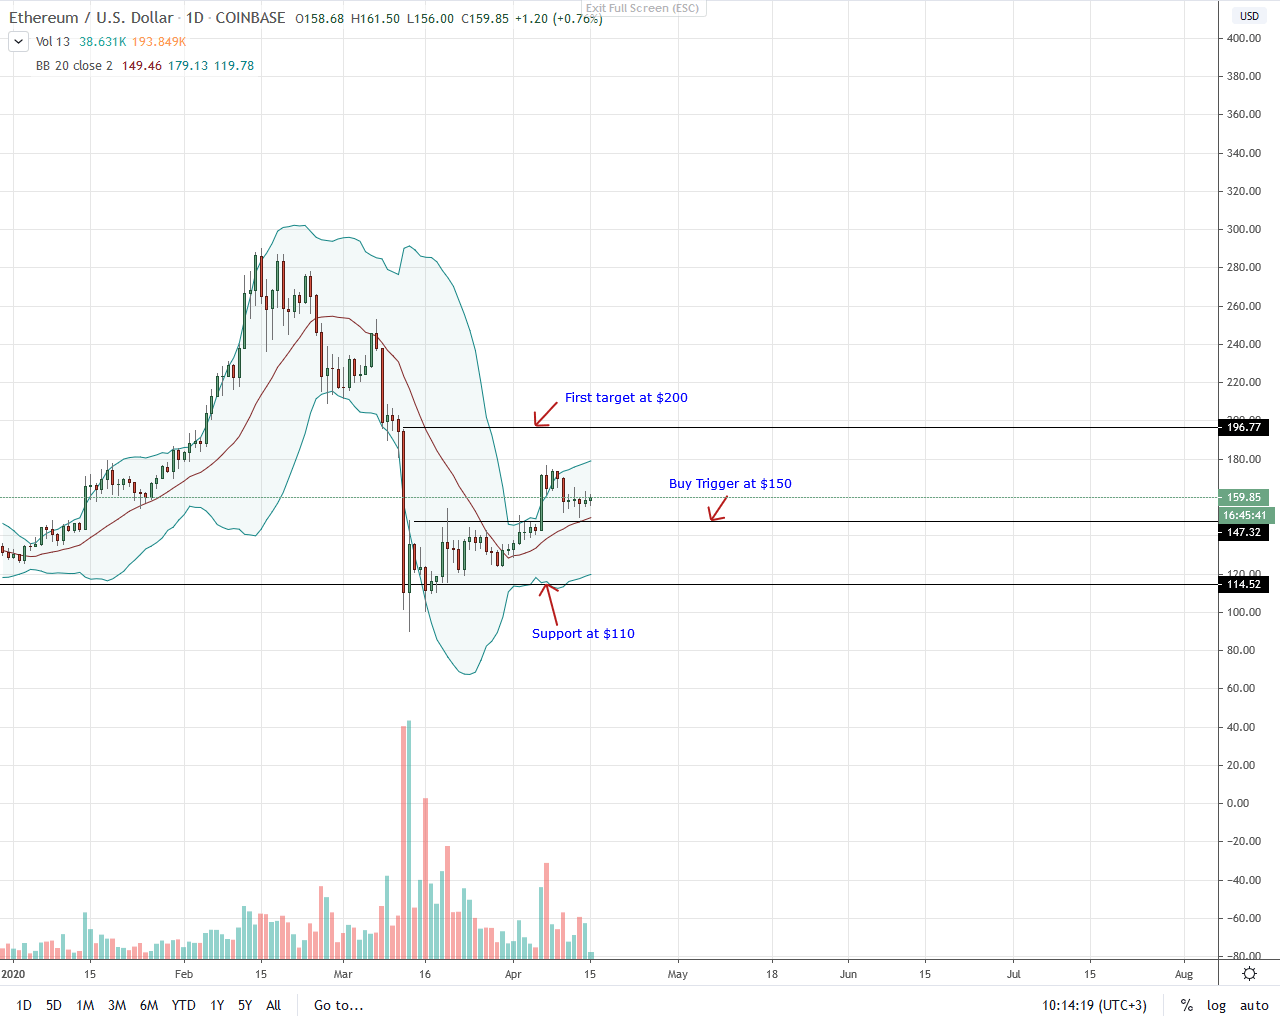 Ethereum Daily Chart for Apr 15